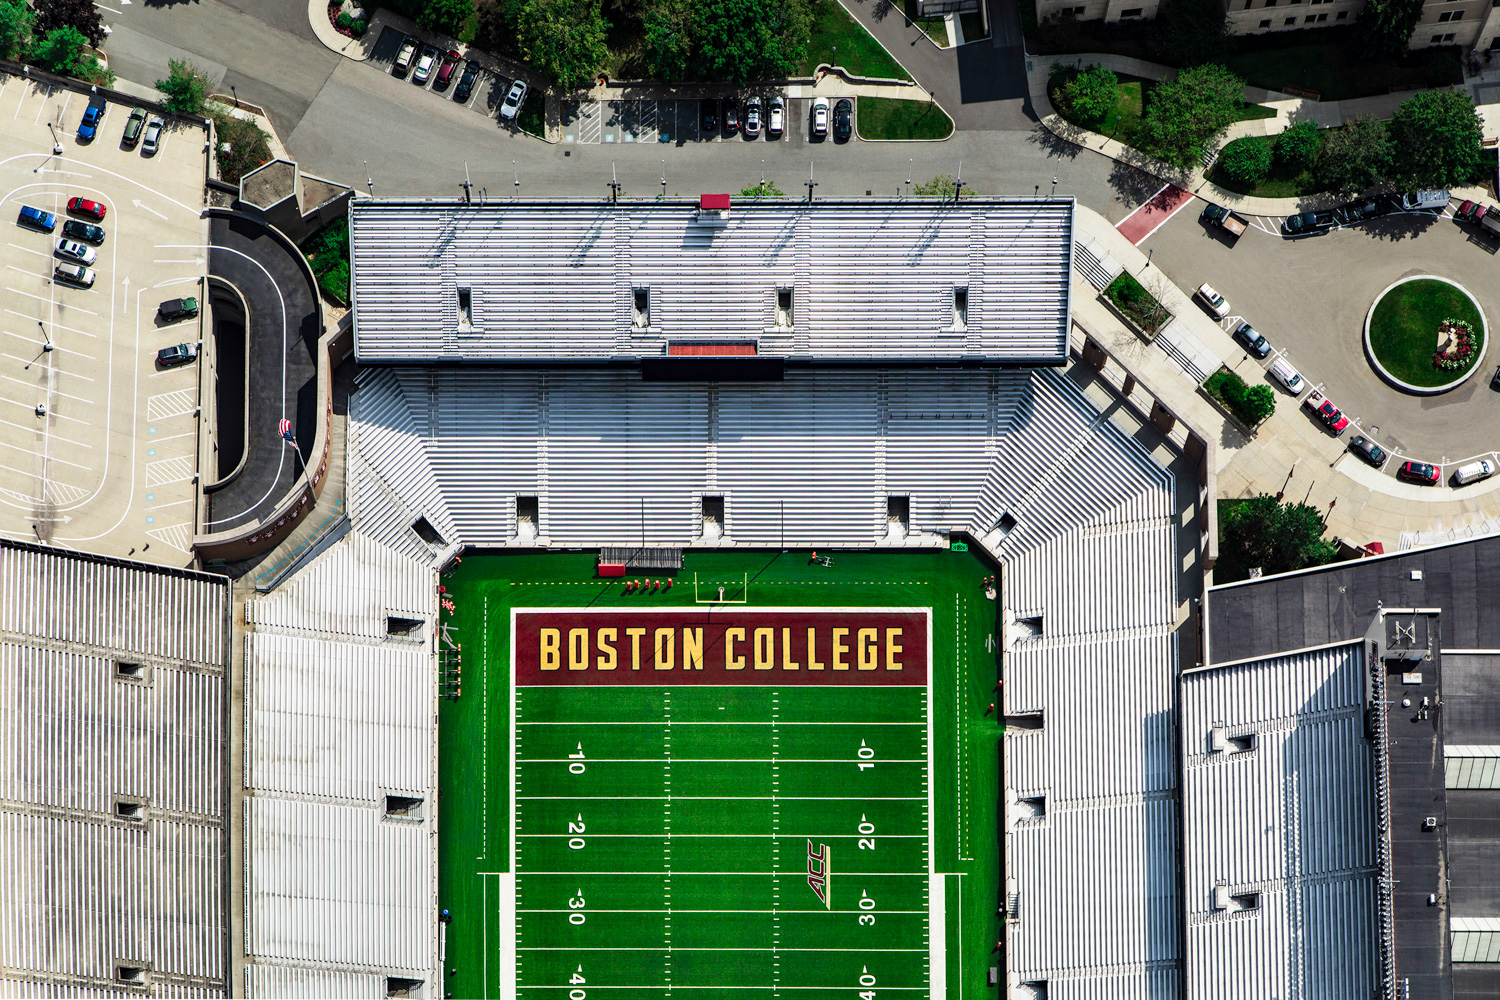 Boston College Aerial Photograph Drone